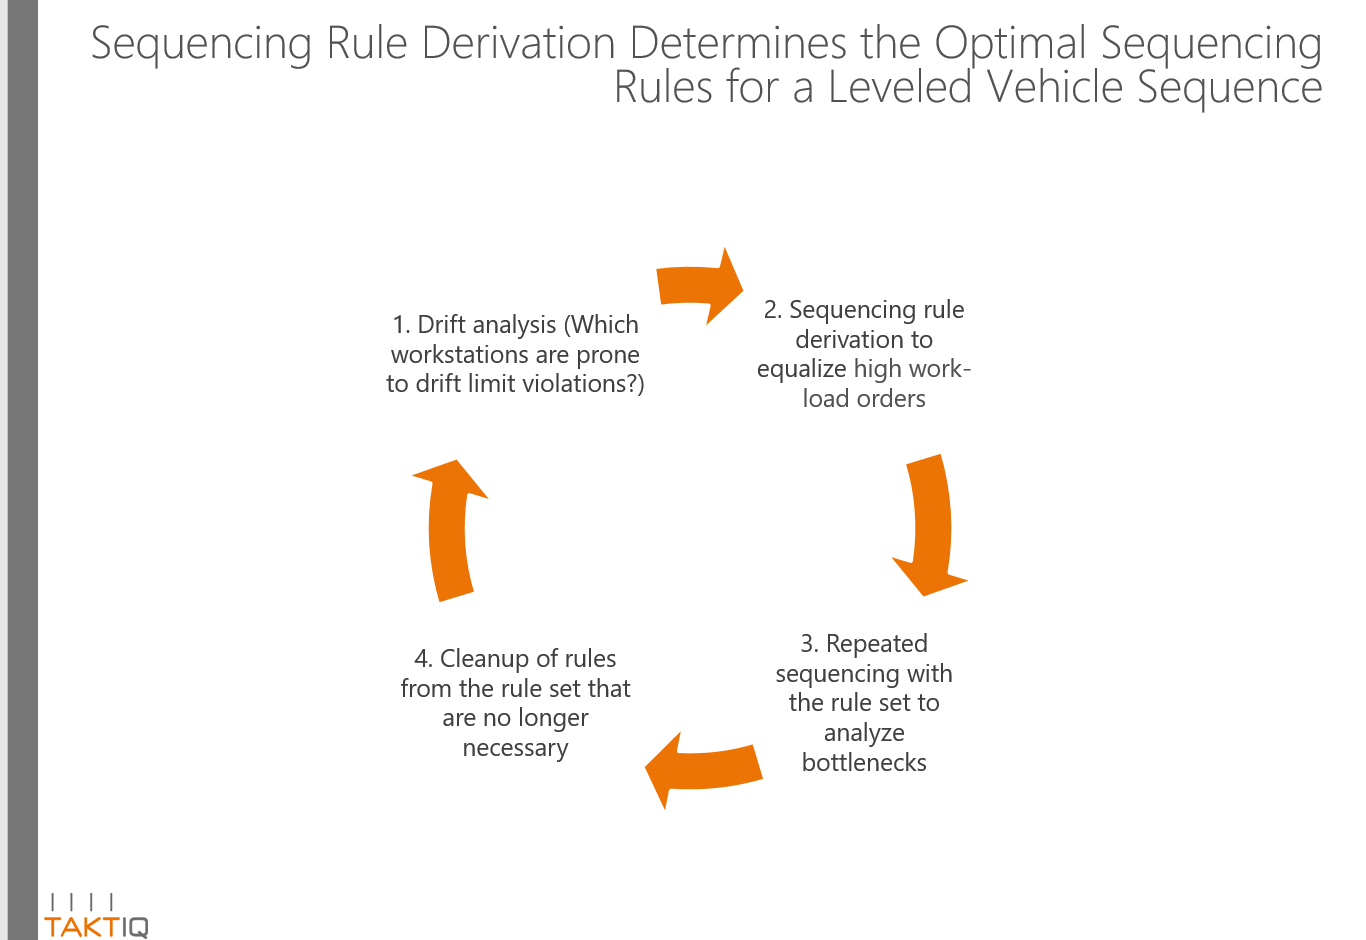 Sequencing Rule Derivation as an Interative Process